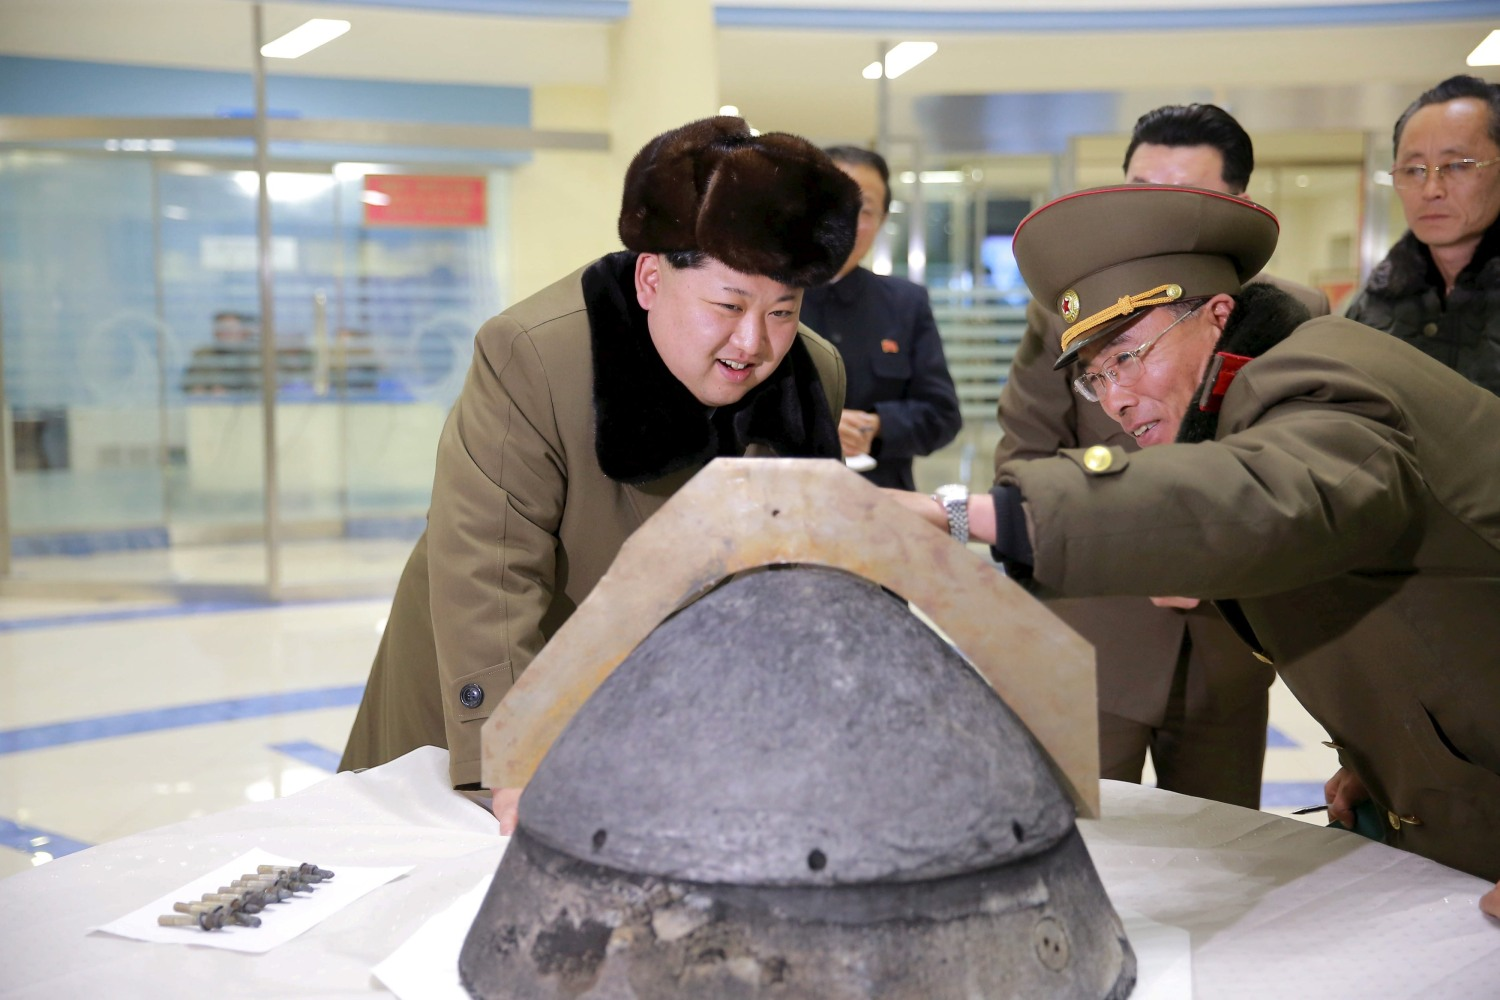 United States officials warn that North Korea will test another missile soon